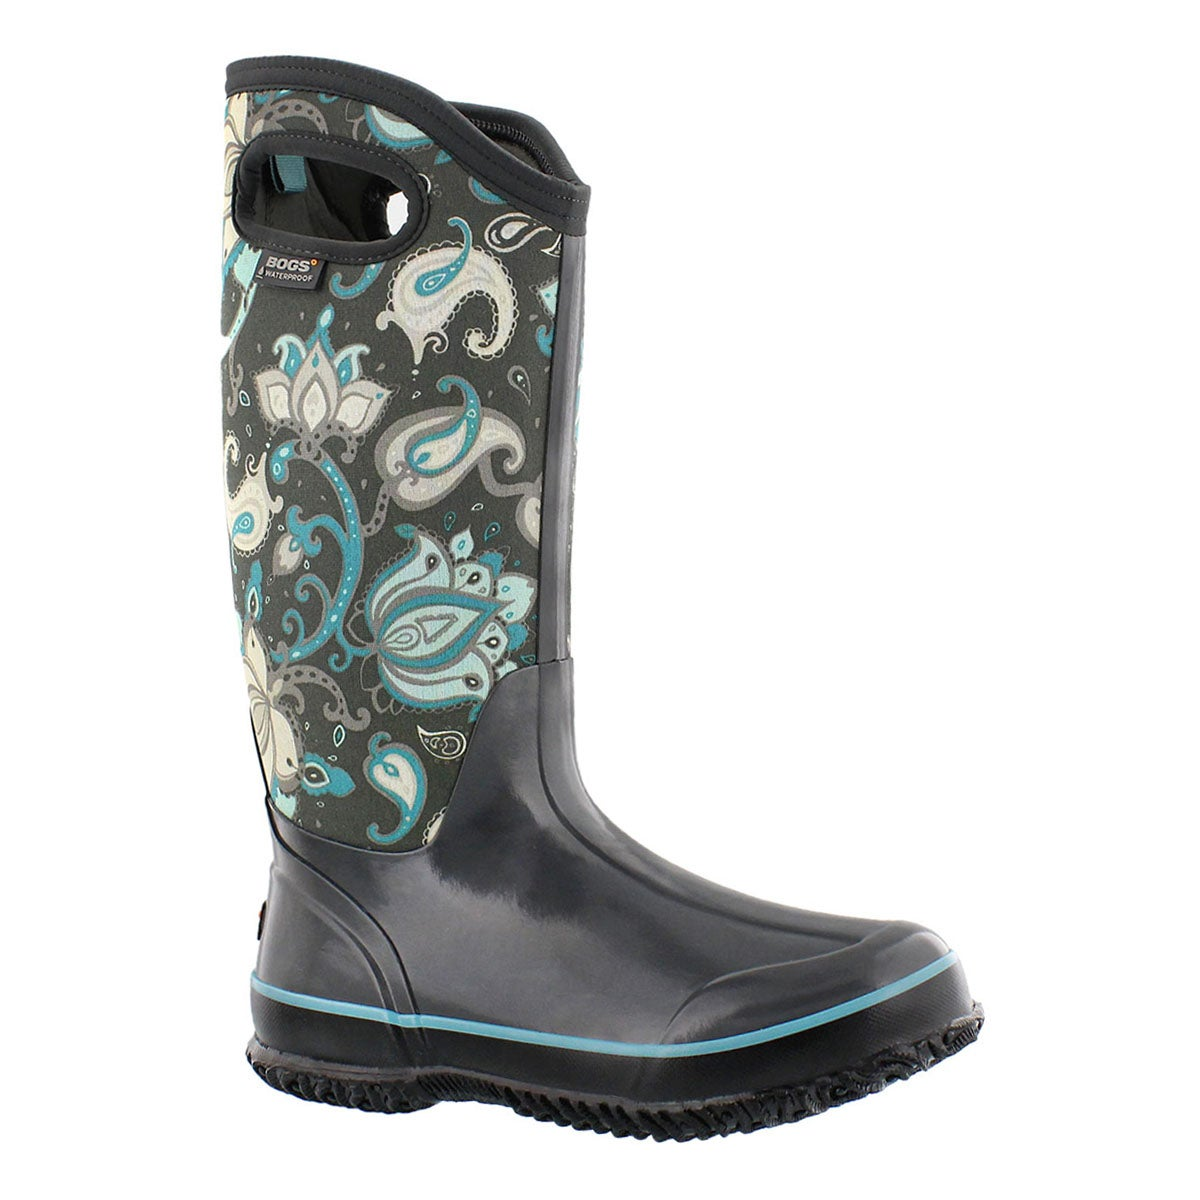 Women's CLASSIC PAISLEY FLORAL TALL wtrproof boots